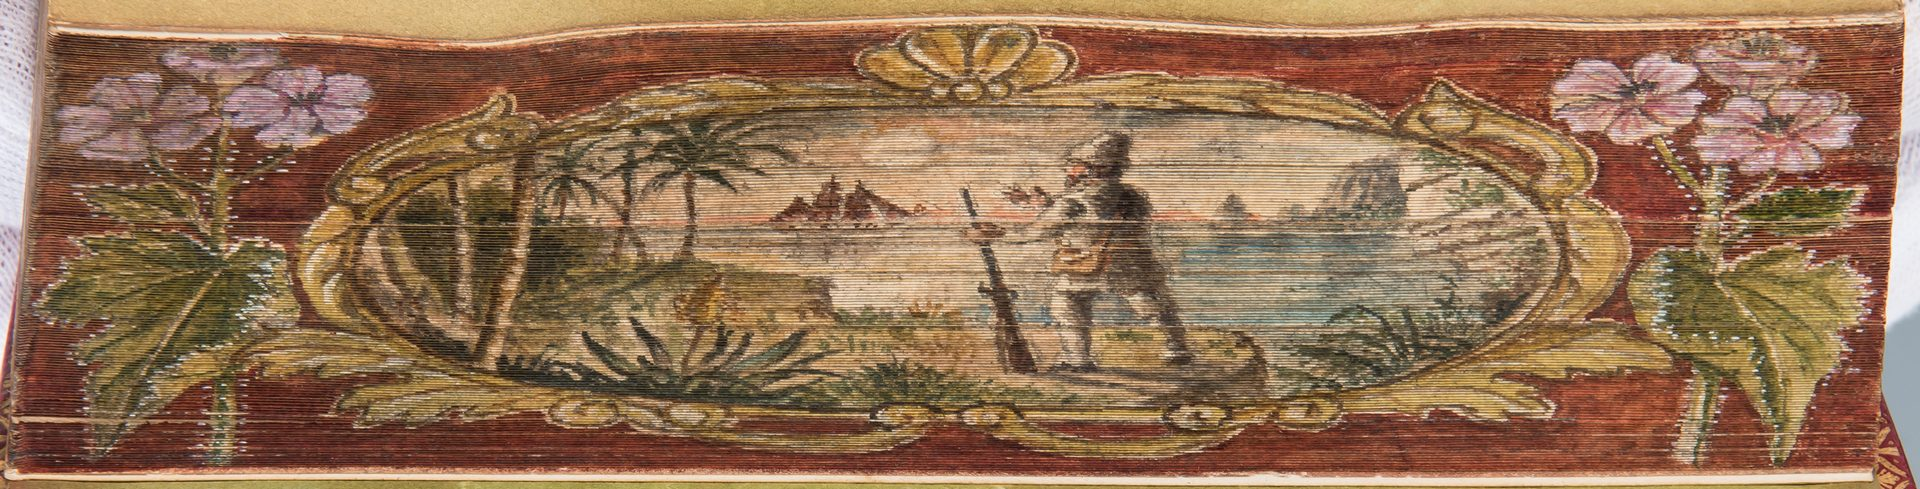 Lot 744: Double Fore-Edge Painted Robinson Crusoe, 2 Vols., 1820 Defoe